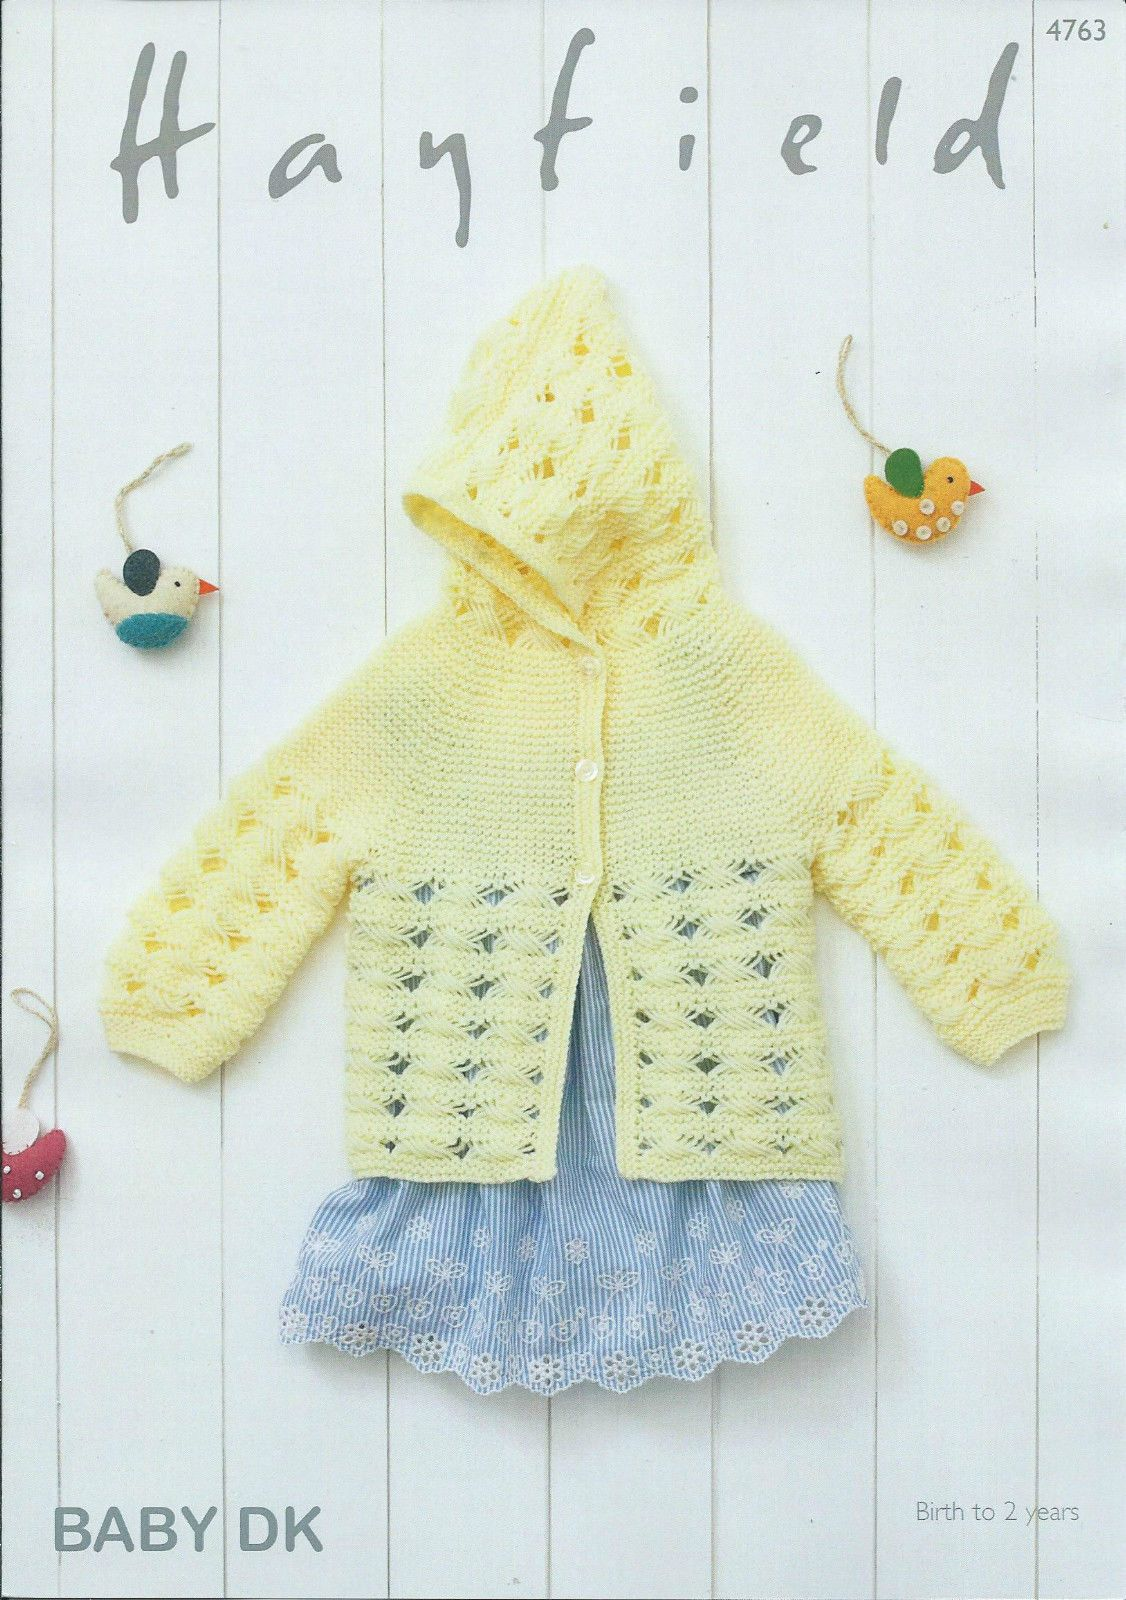 4763 - HAYFIELD BABY DK HOODED JACKET KNITTING PATTERN - TO FIT ...